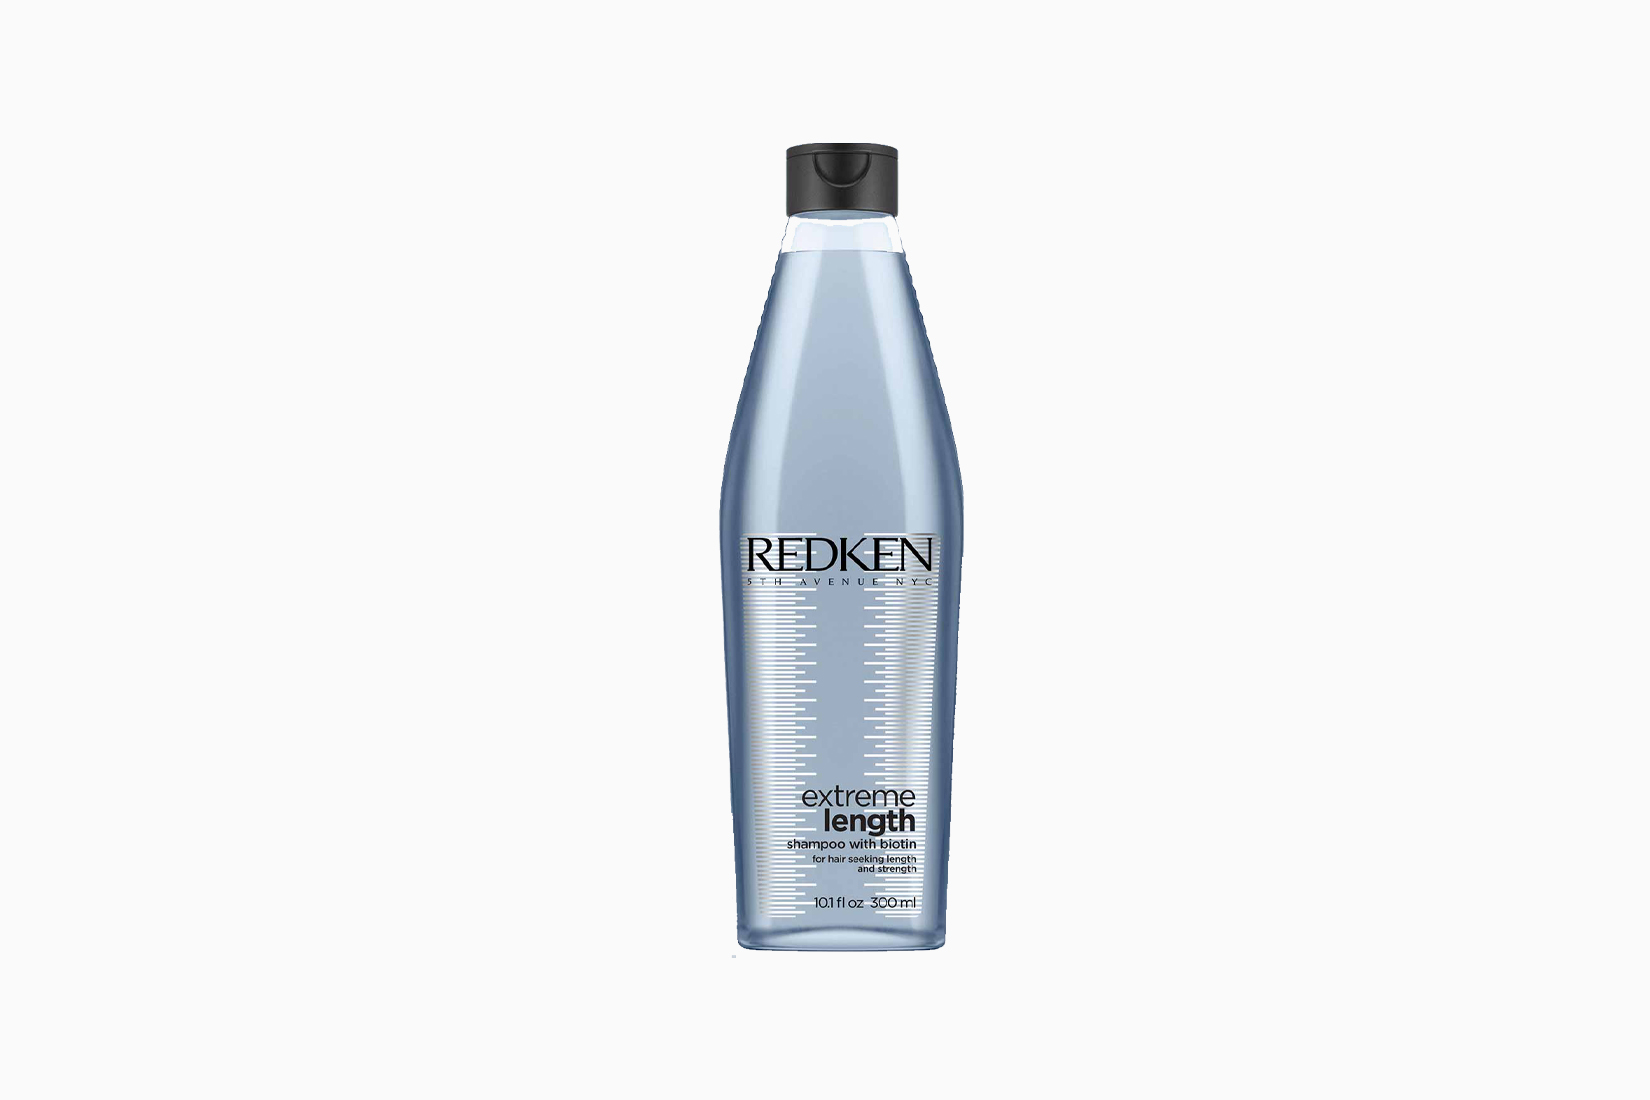 best hair growth shampoo women redken review - Luxe Digital